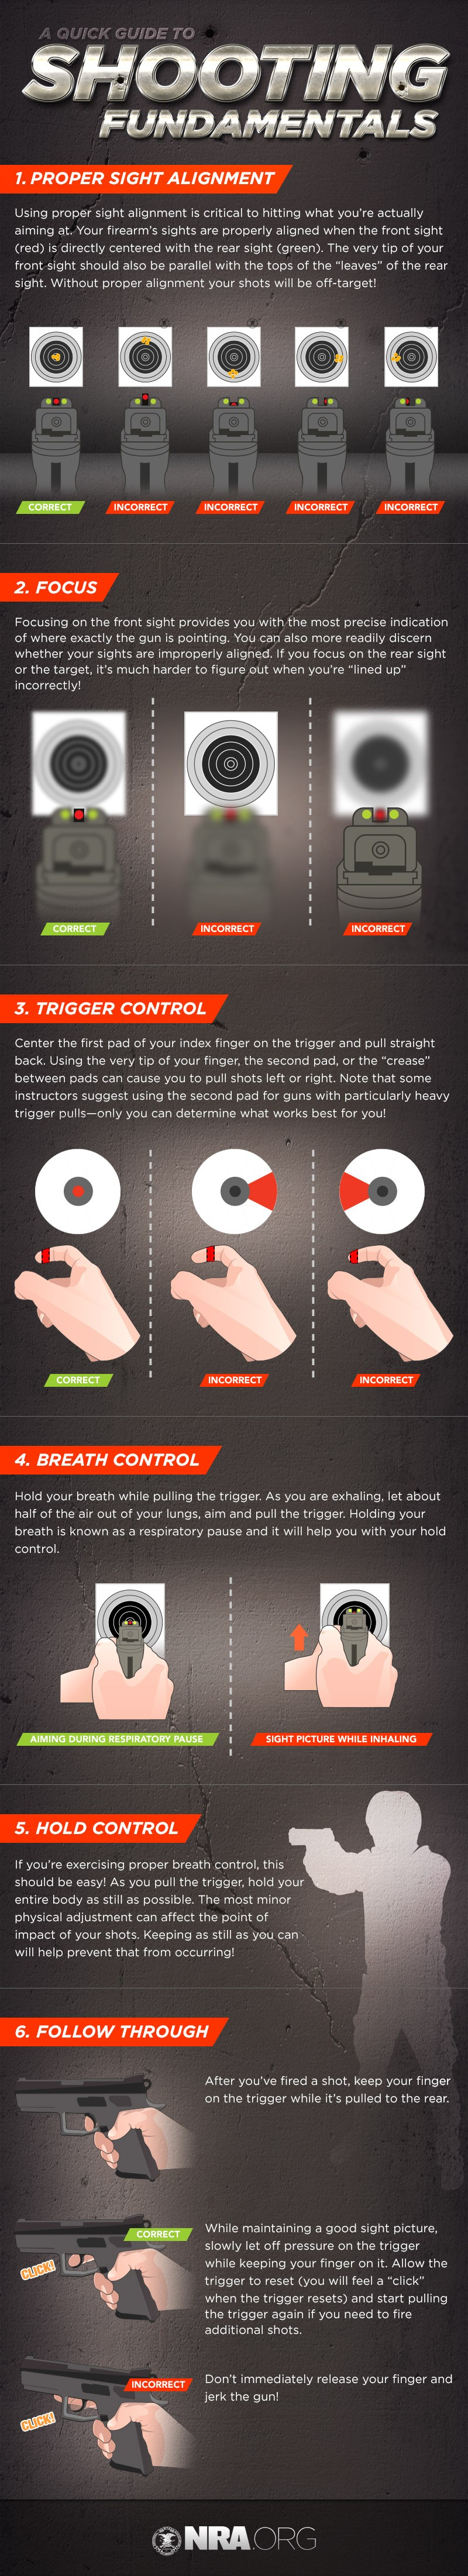 INFOGRAPHIC: A Quick Guide to Shooting Fundamentals